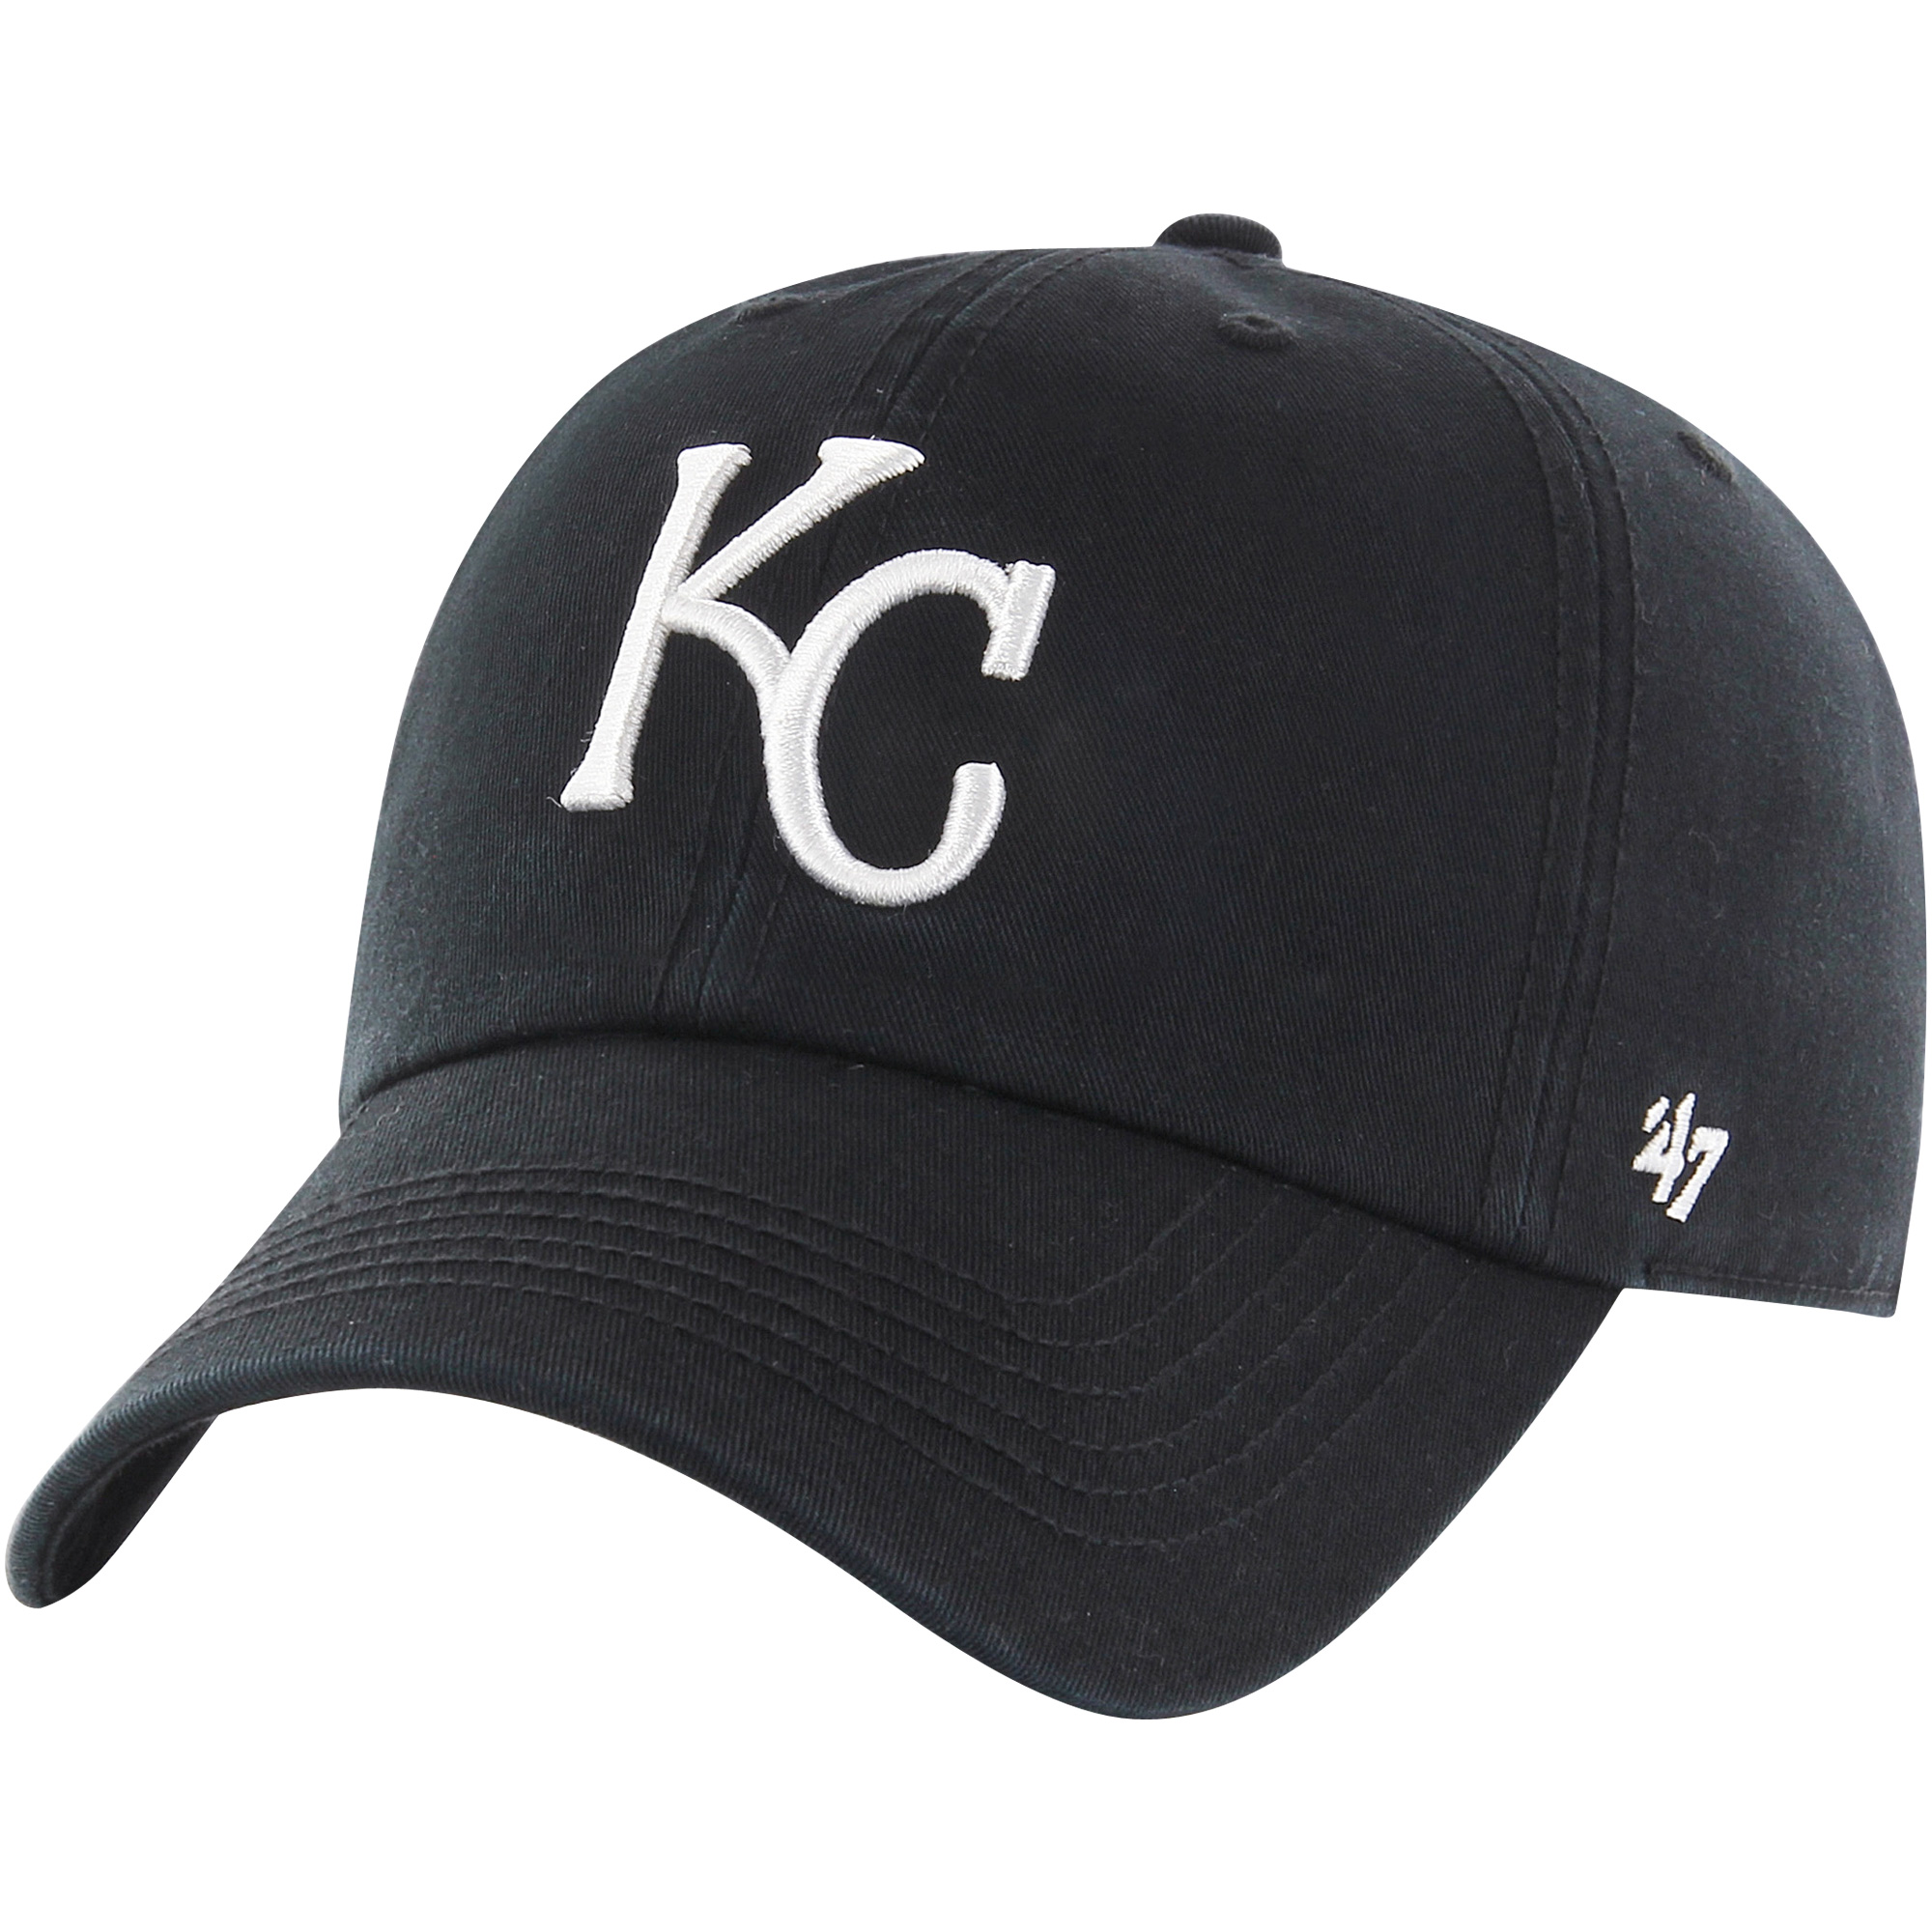 Kansas City Royals '47 Black Out Franchise Fitted Hat - Black